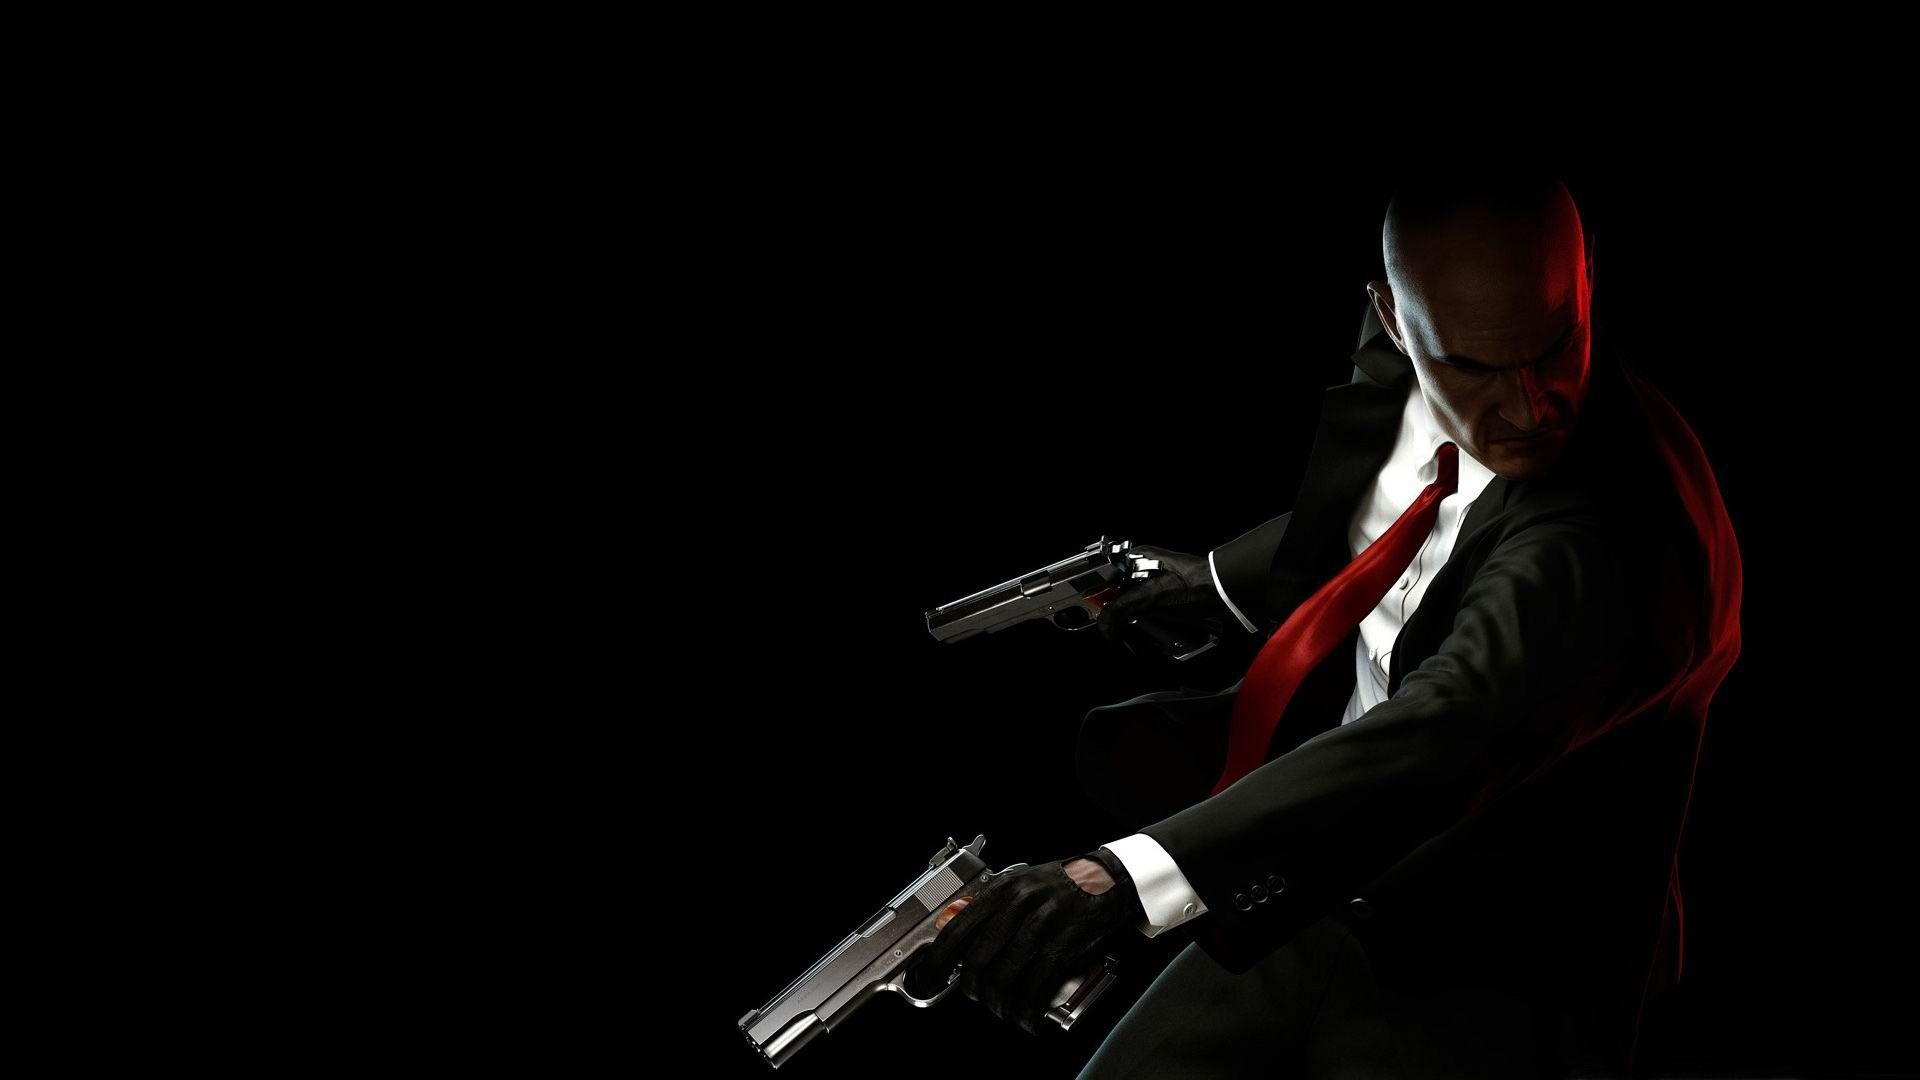 Hitman Wallpaper Widescreen #0UG